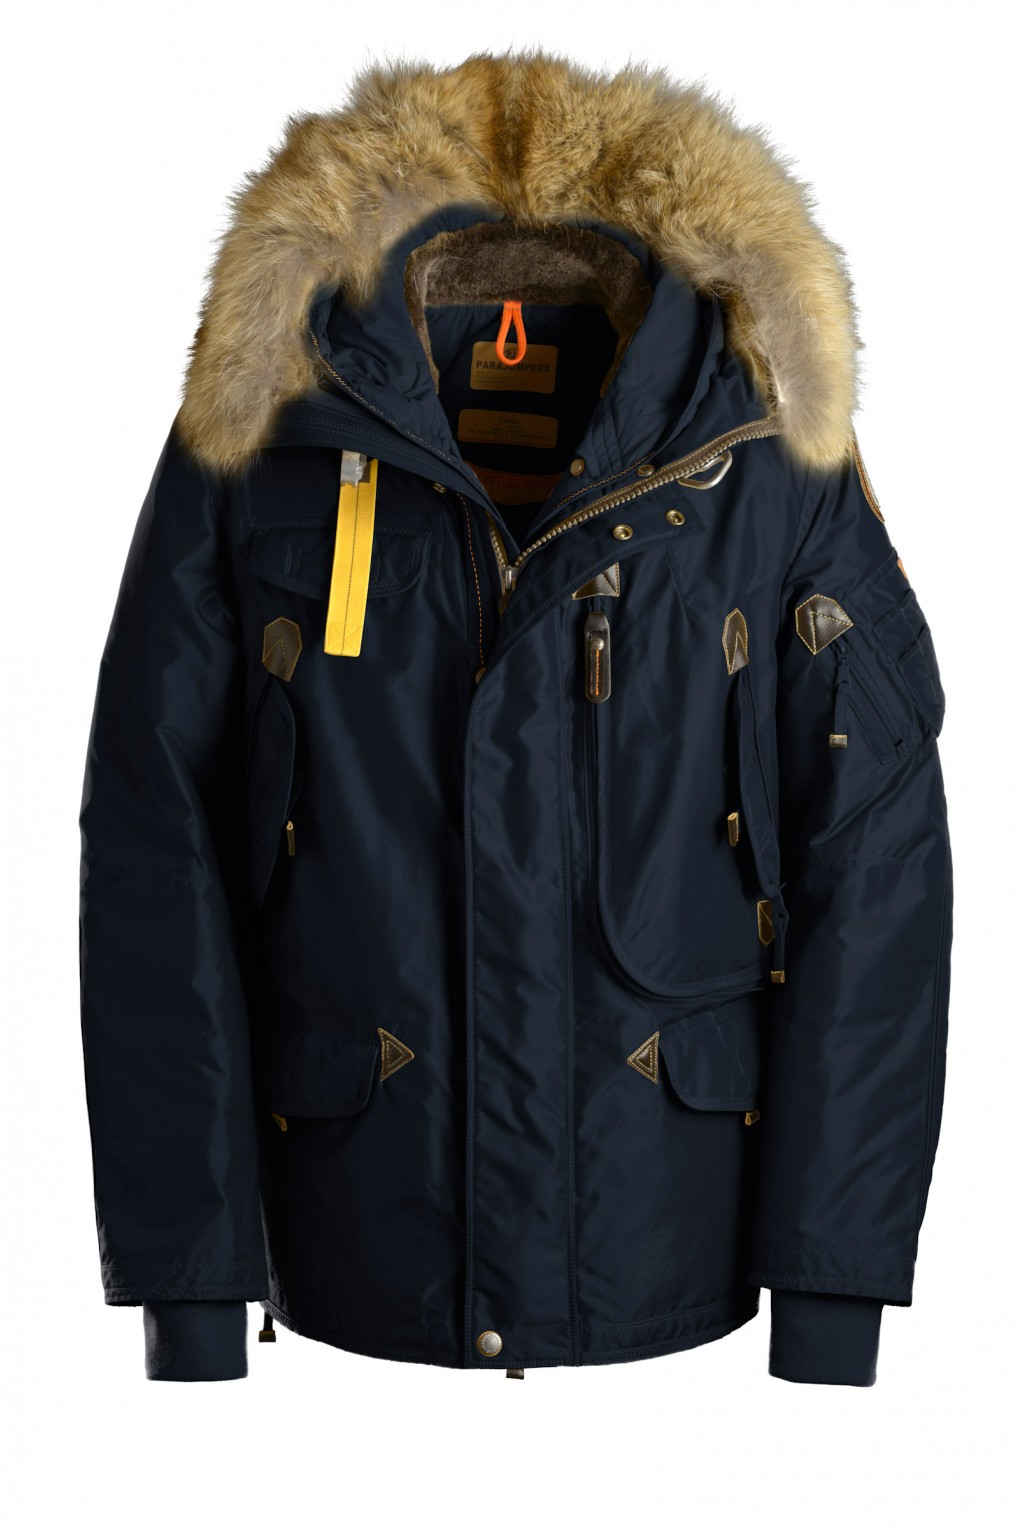 parajumpers RIGHT HAND man outerwear navy